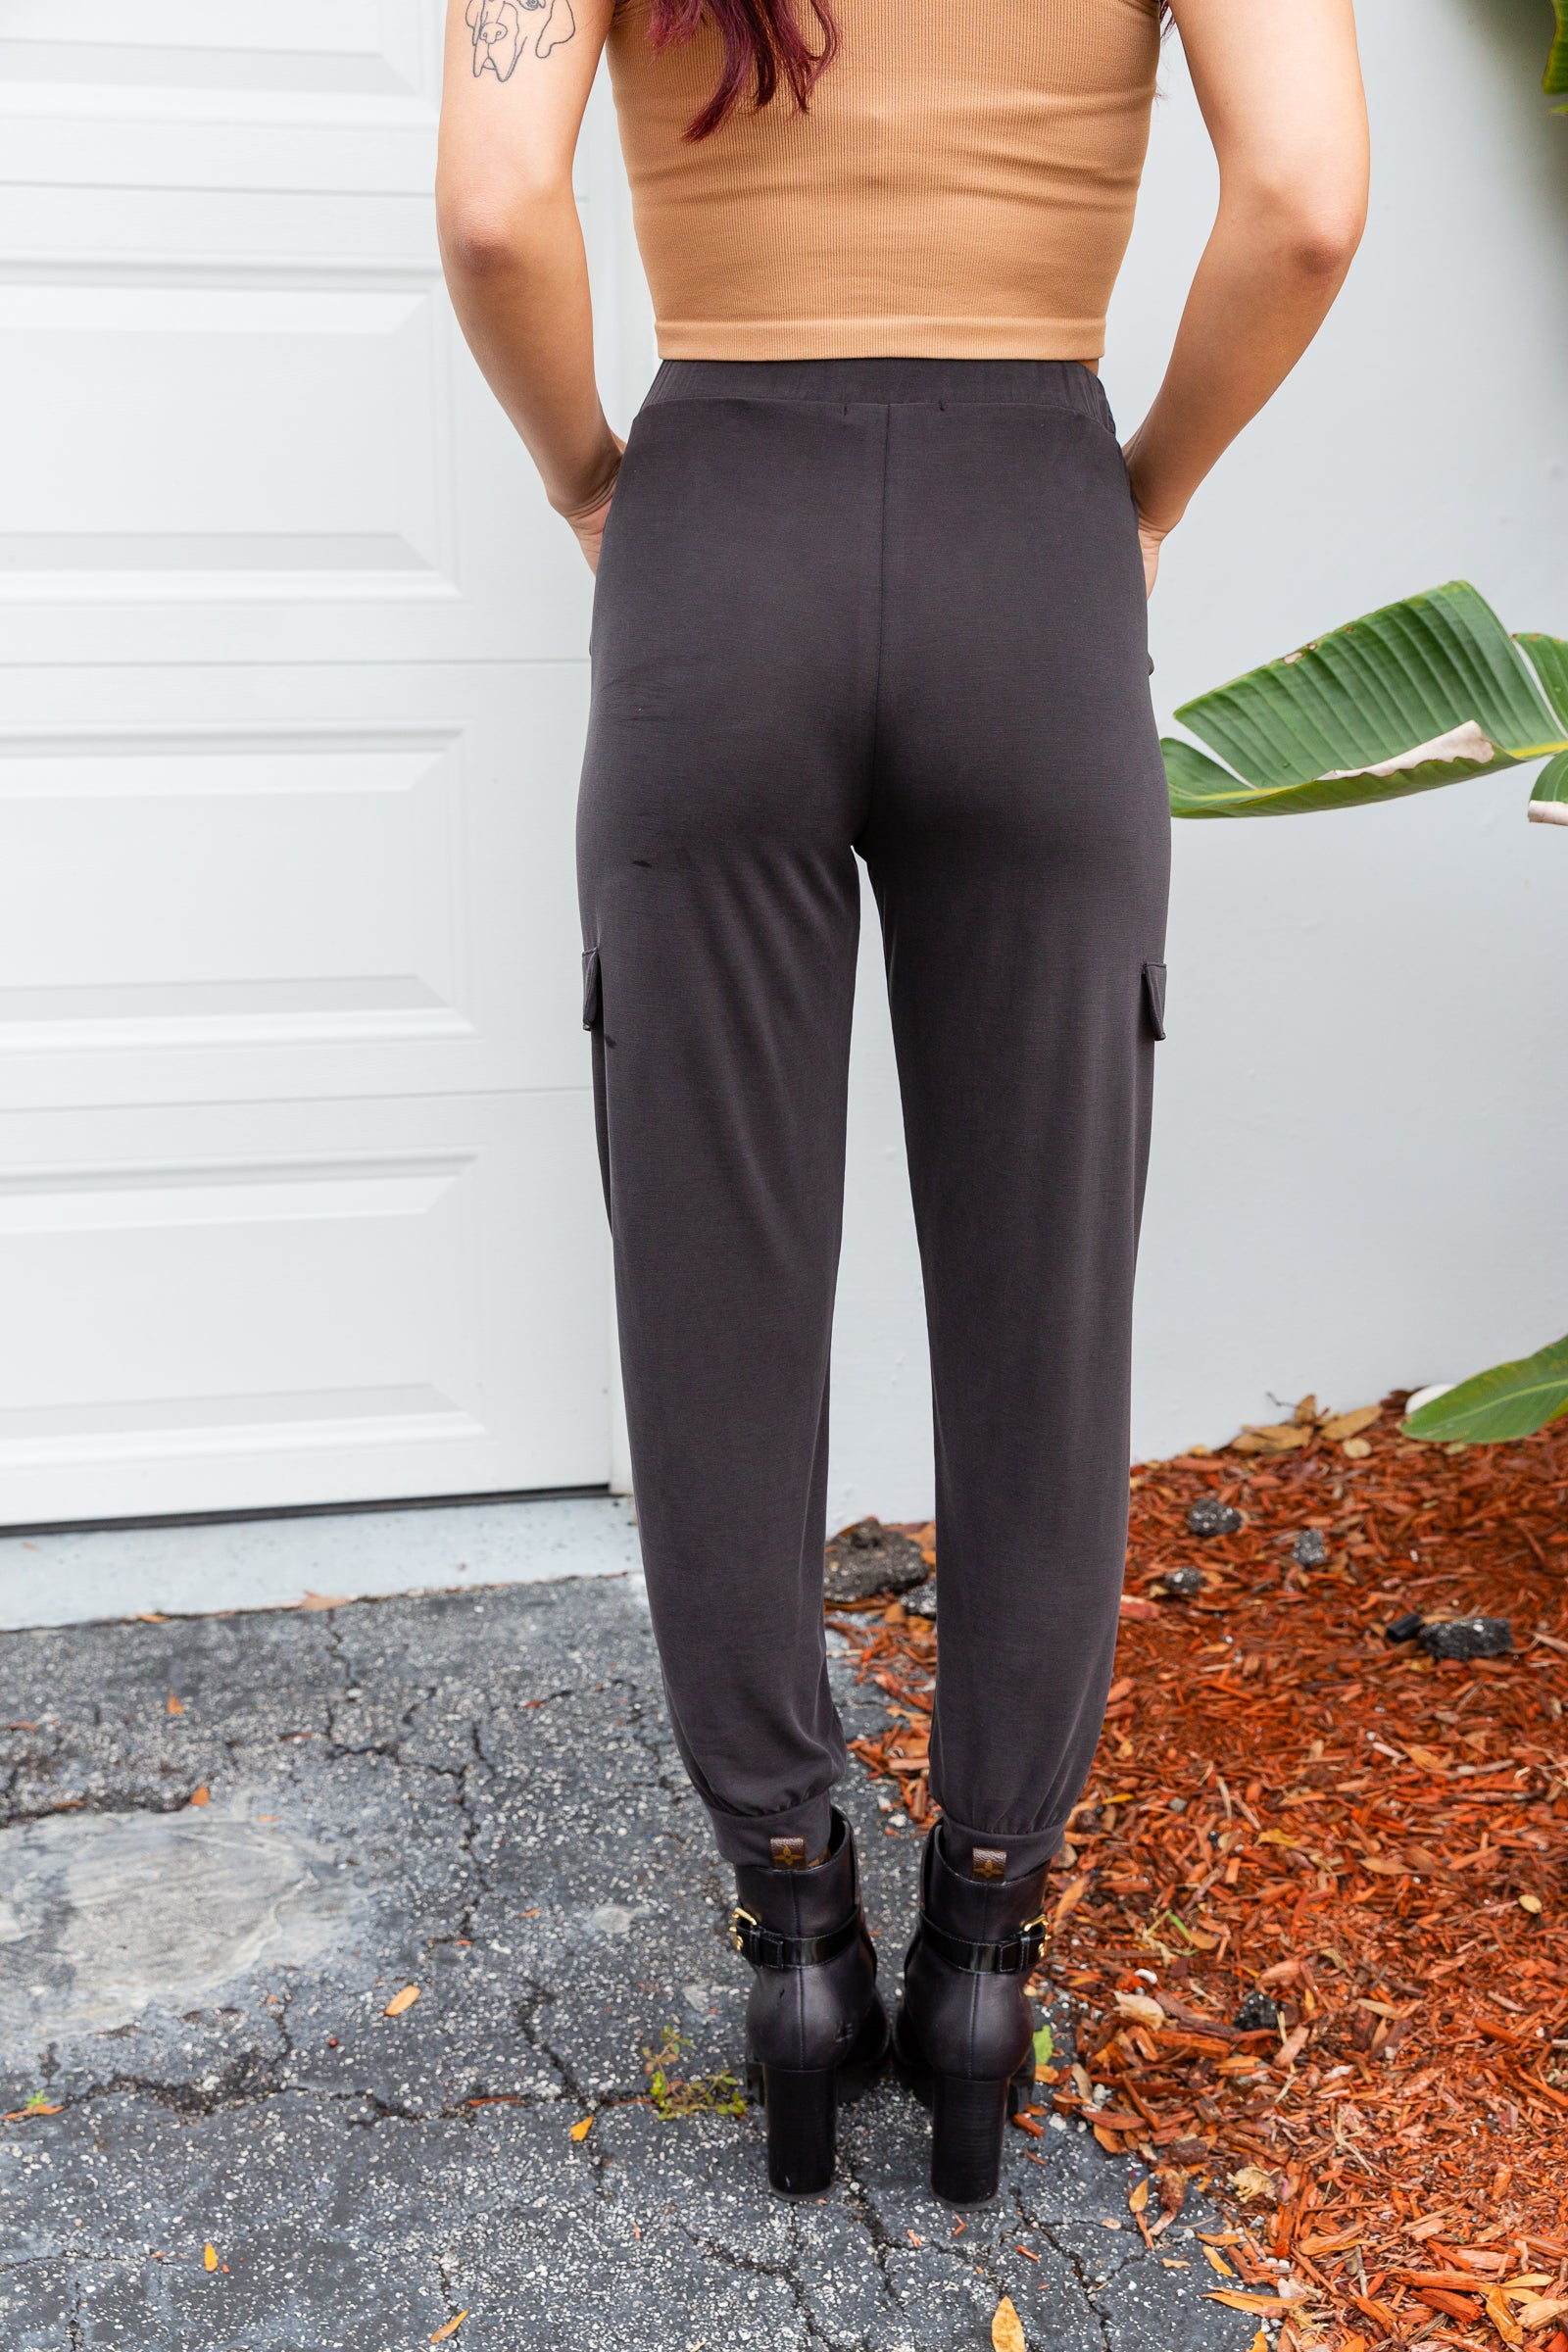 These comfy joggers have a faux drawstring tie at the elastic waistband leading to comfortable fit pants with side pockets that tapers into a skinny pant leg with an elastic cuff at the ankle.